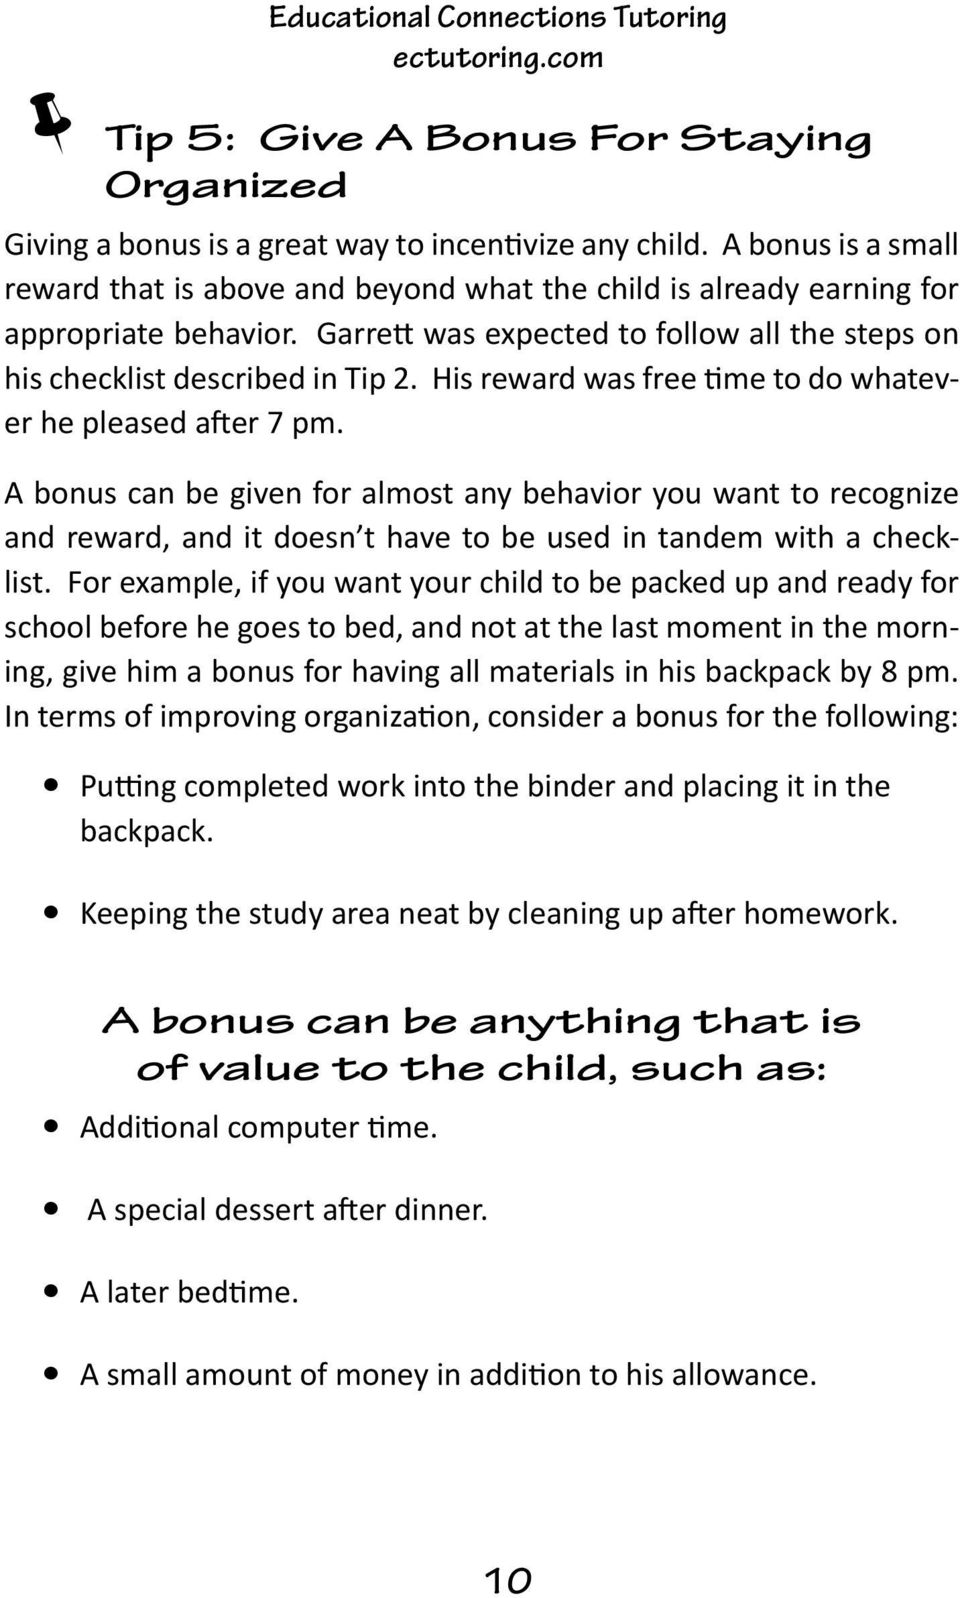 His reward was free time to do whatever he pleased after 7 pm. A bonus can be given for almost any behavior you want to recognize and reward, and it doesn t have to be used in tandem with a checklist.